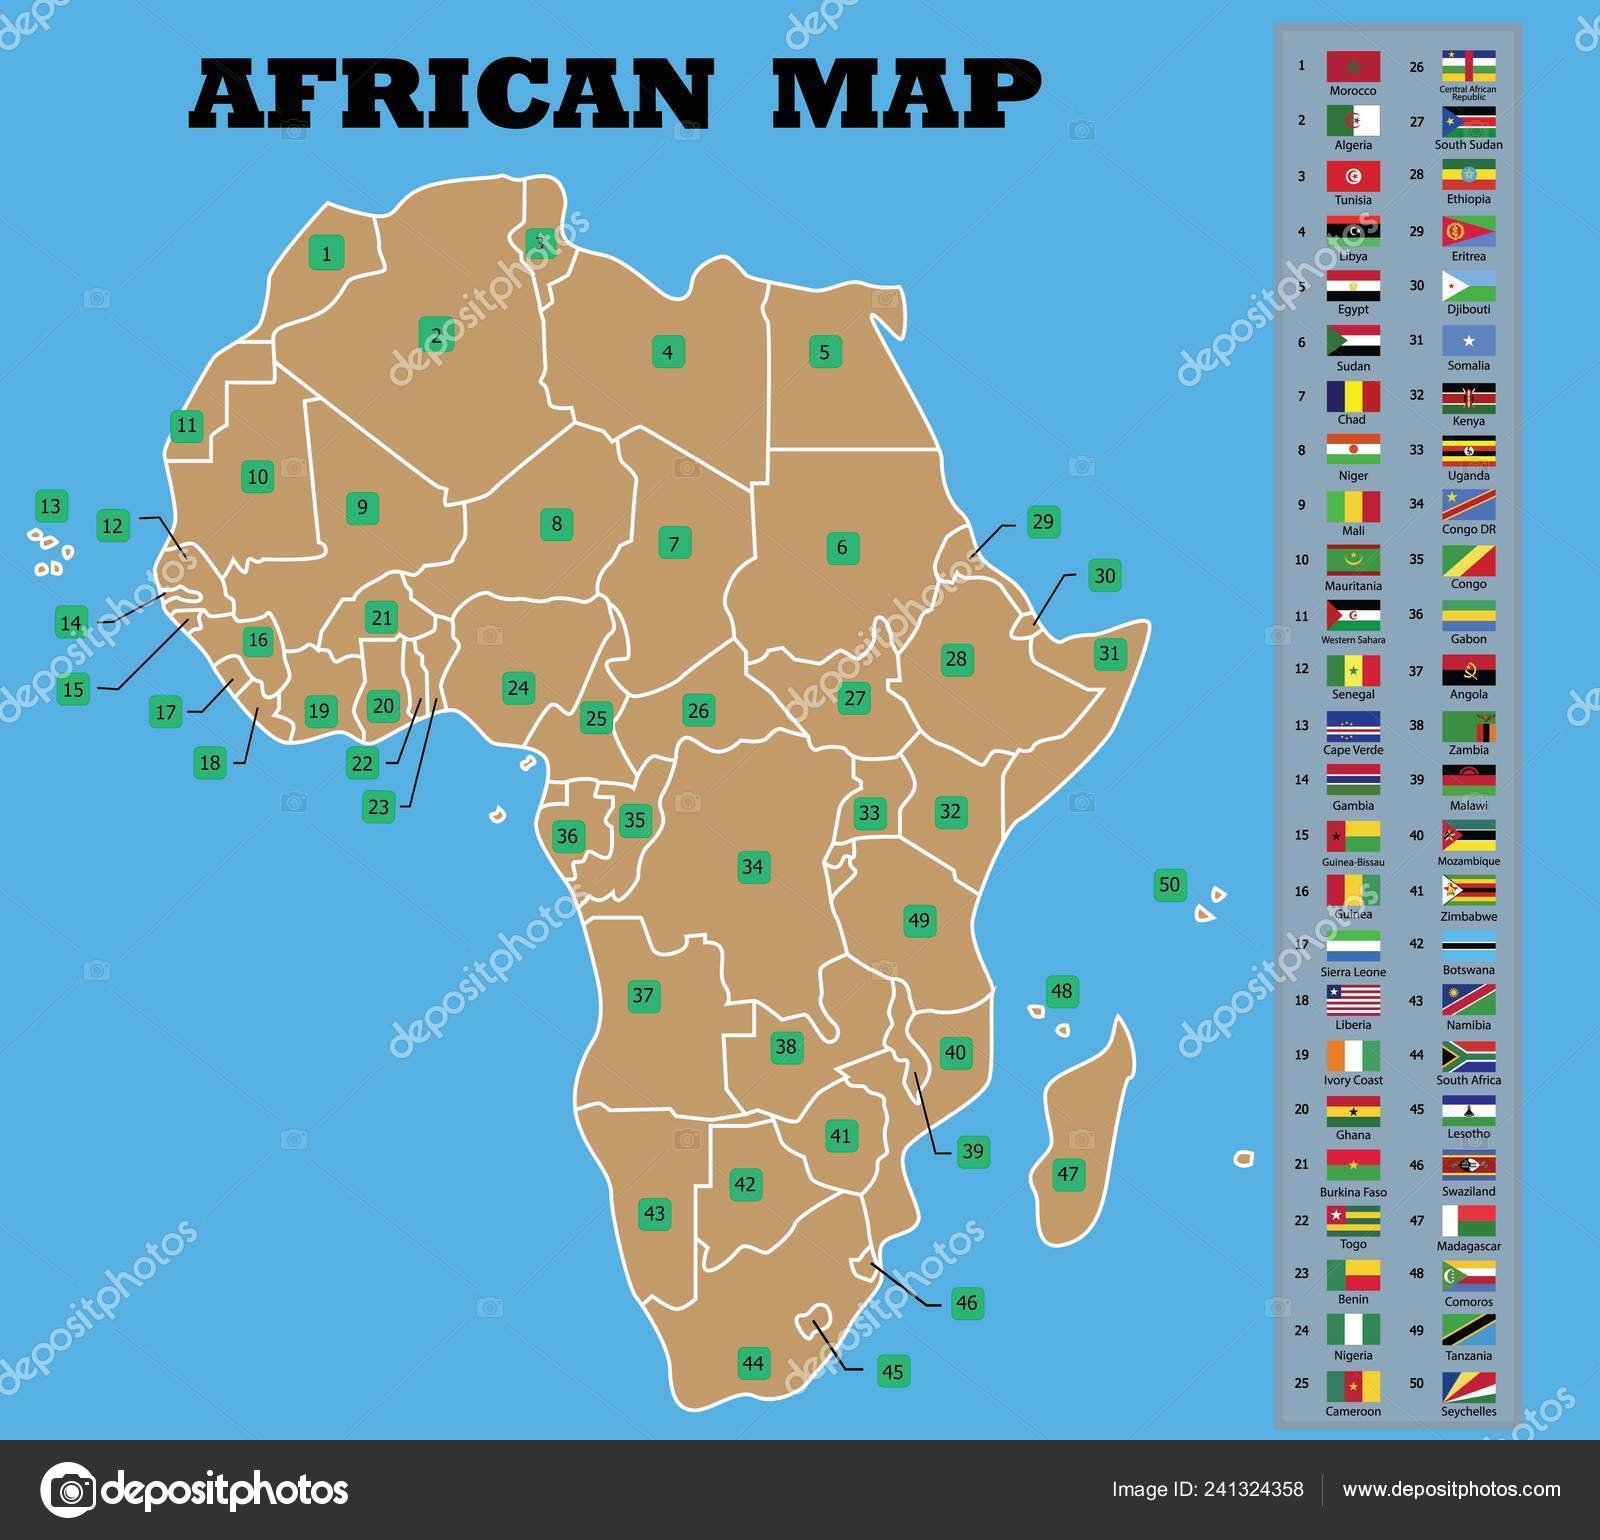 African Map African Countries Flags Counties Names Vector ...